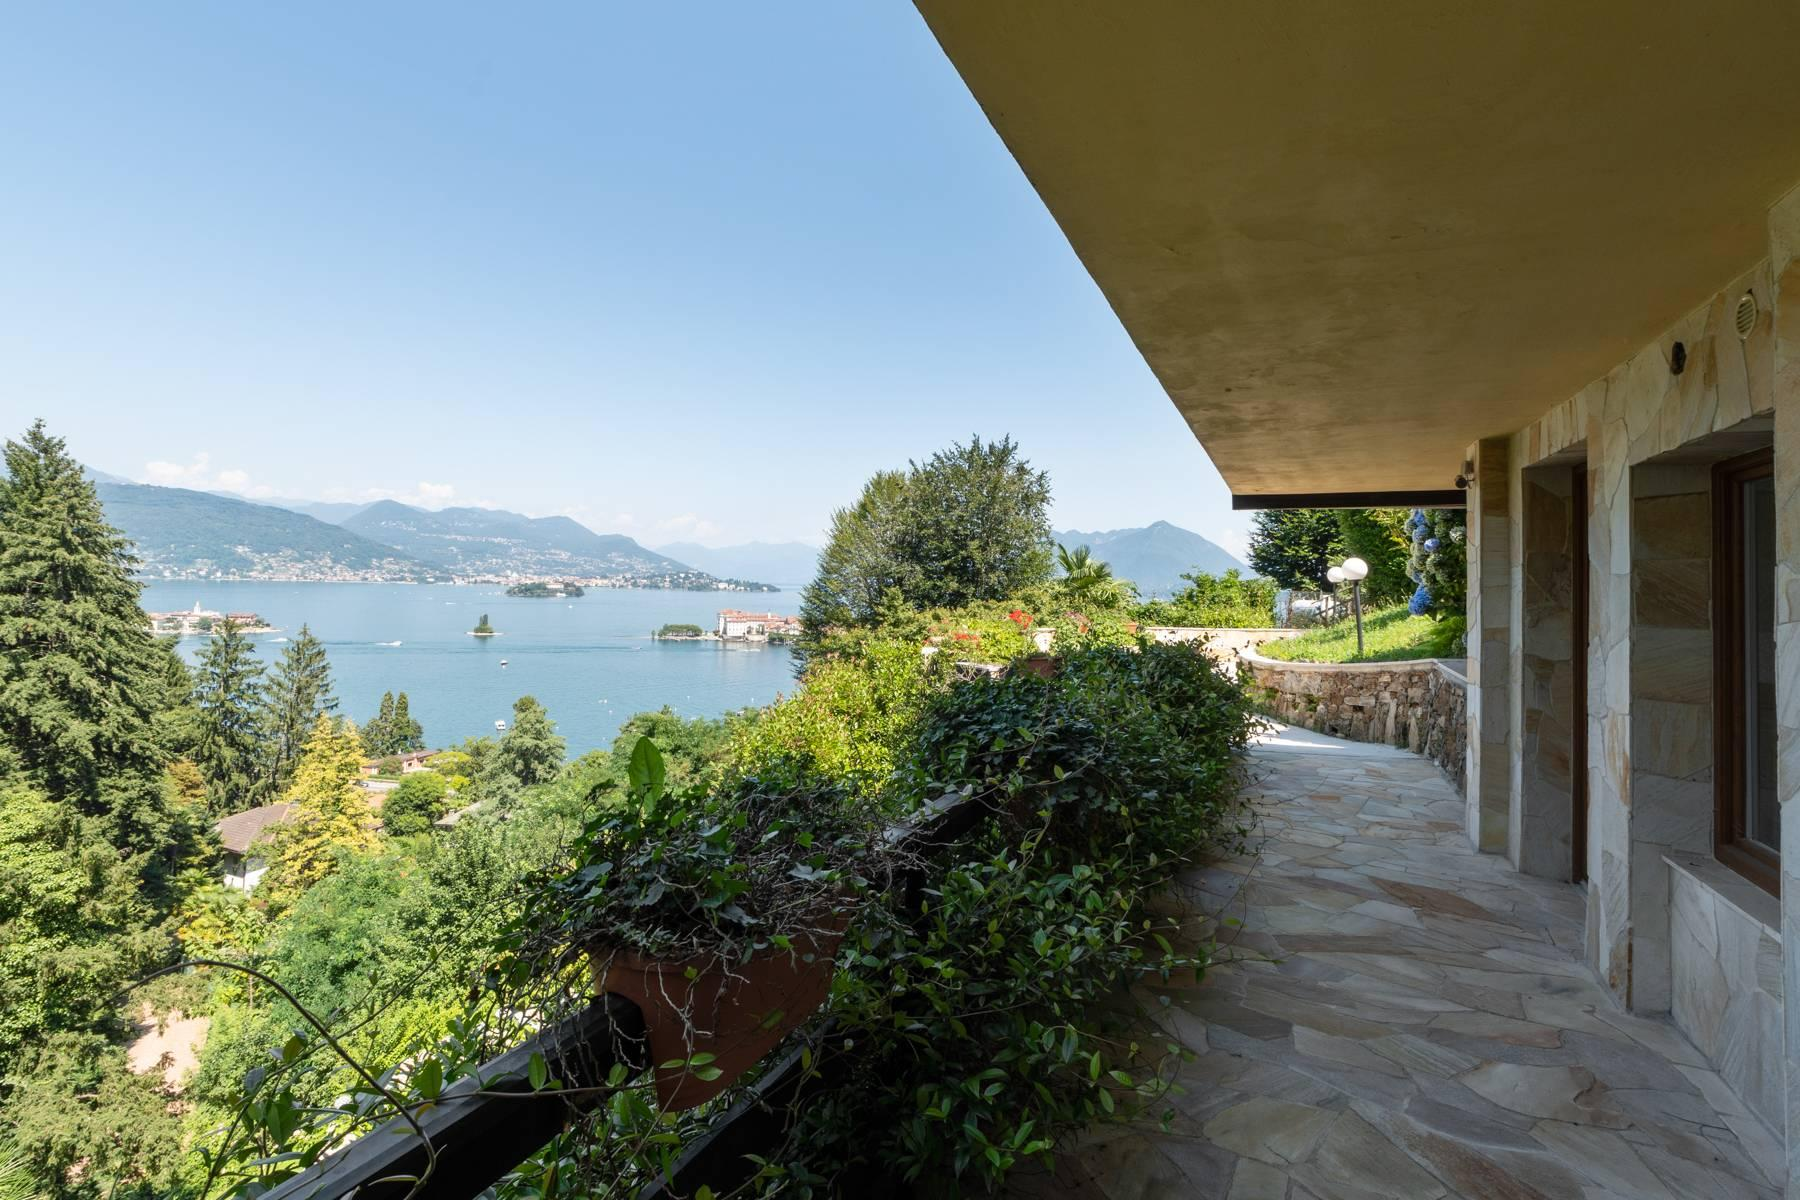 1960s style villa with breathtaking view of the Borromean Islands - 6